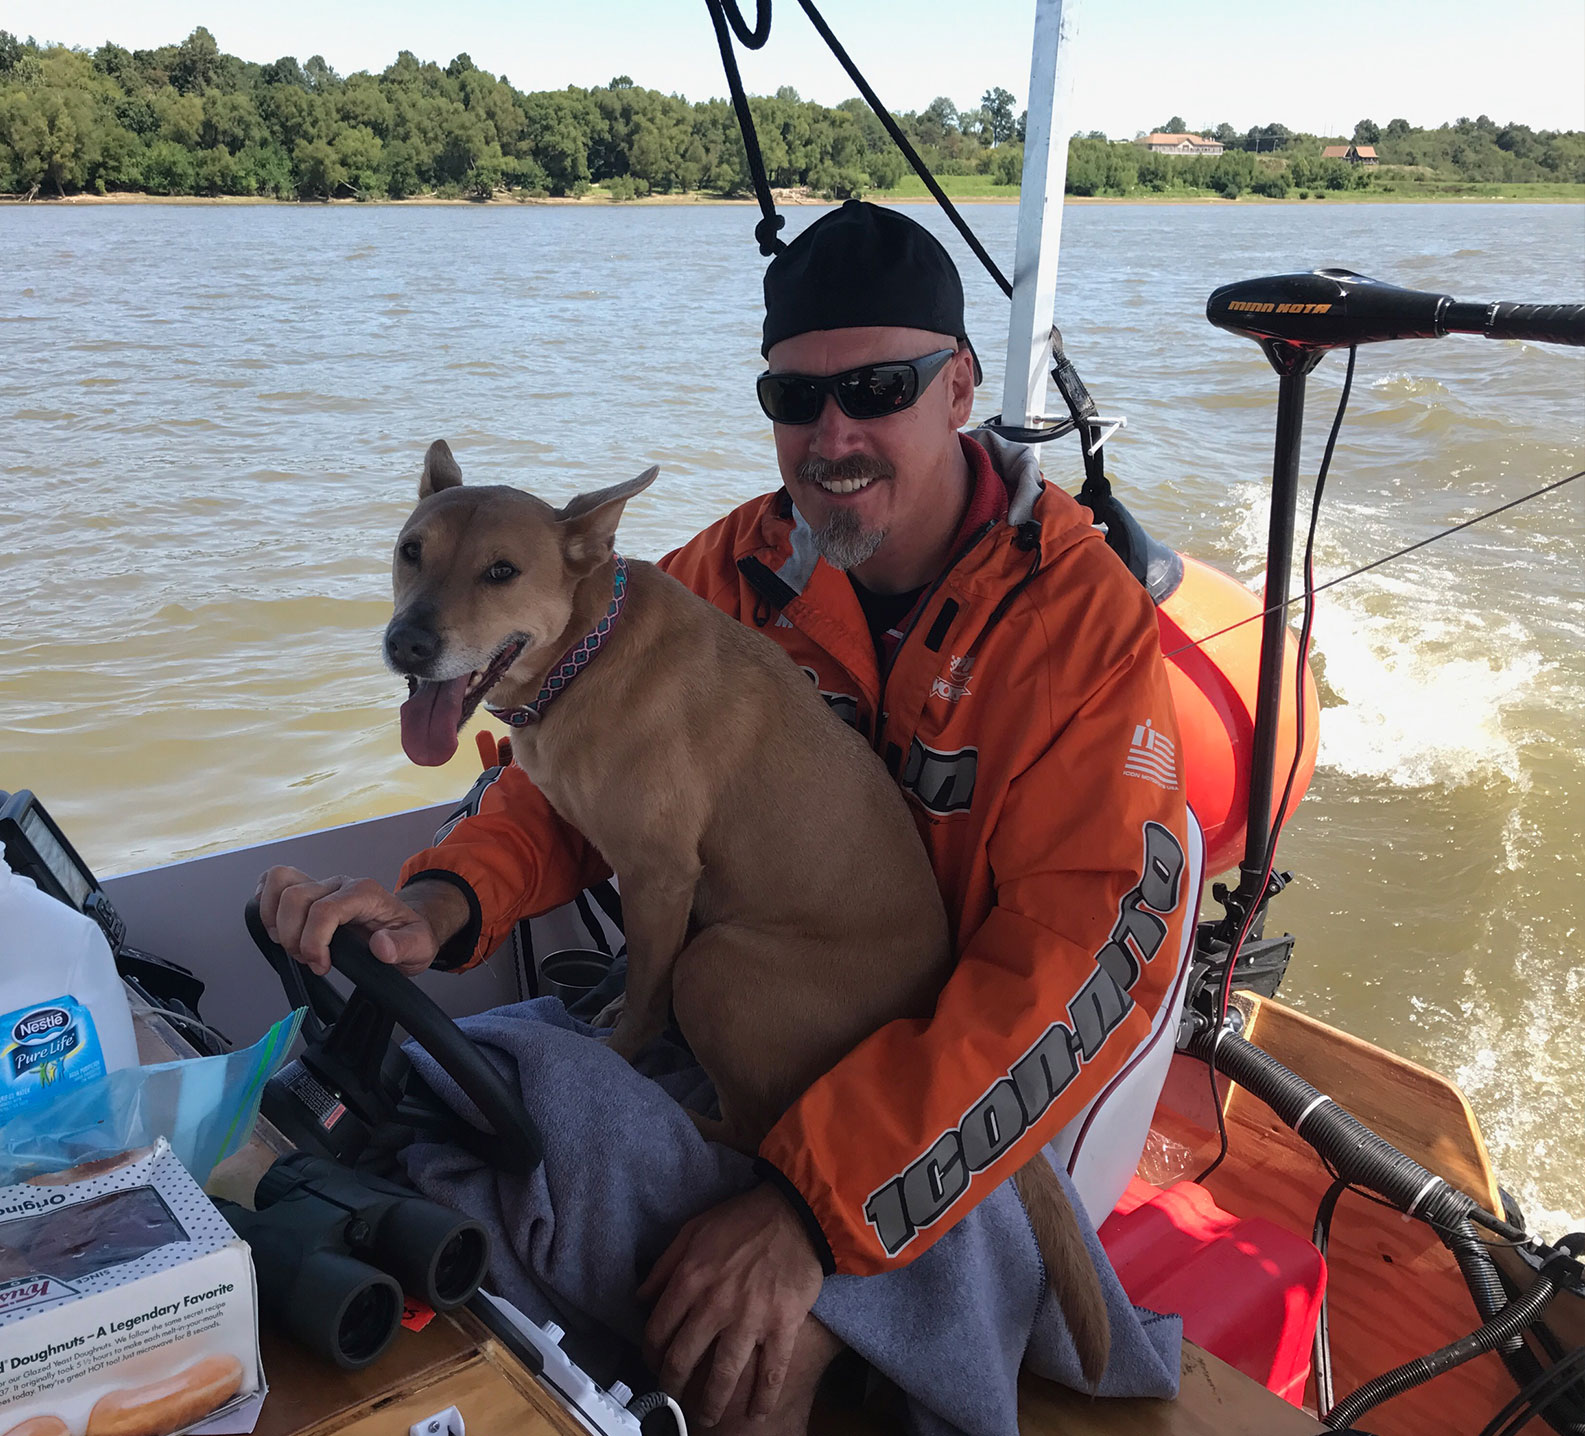 Marc Phelps holding dog Tula while driving the jon boat